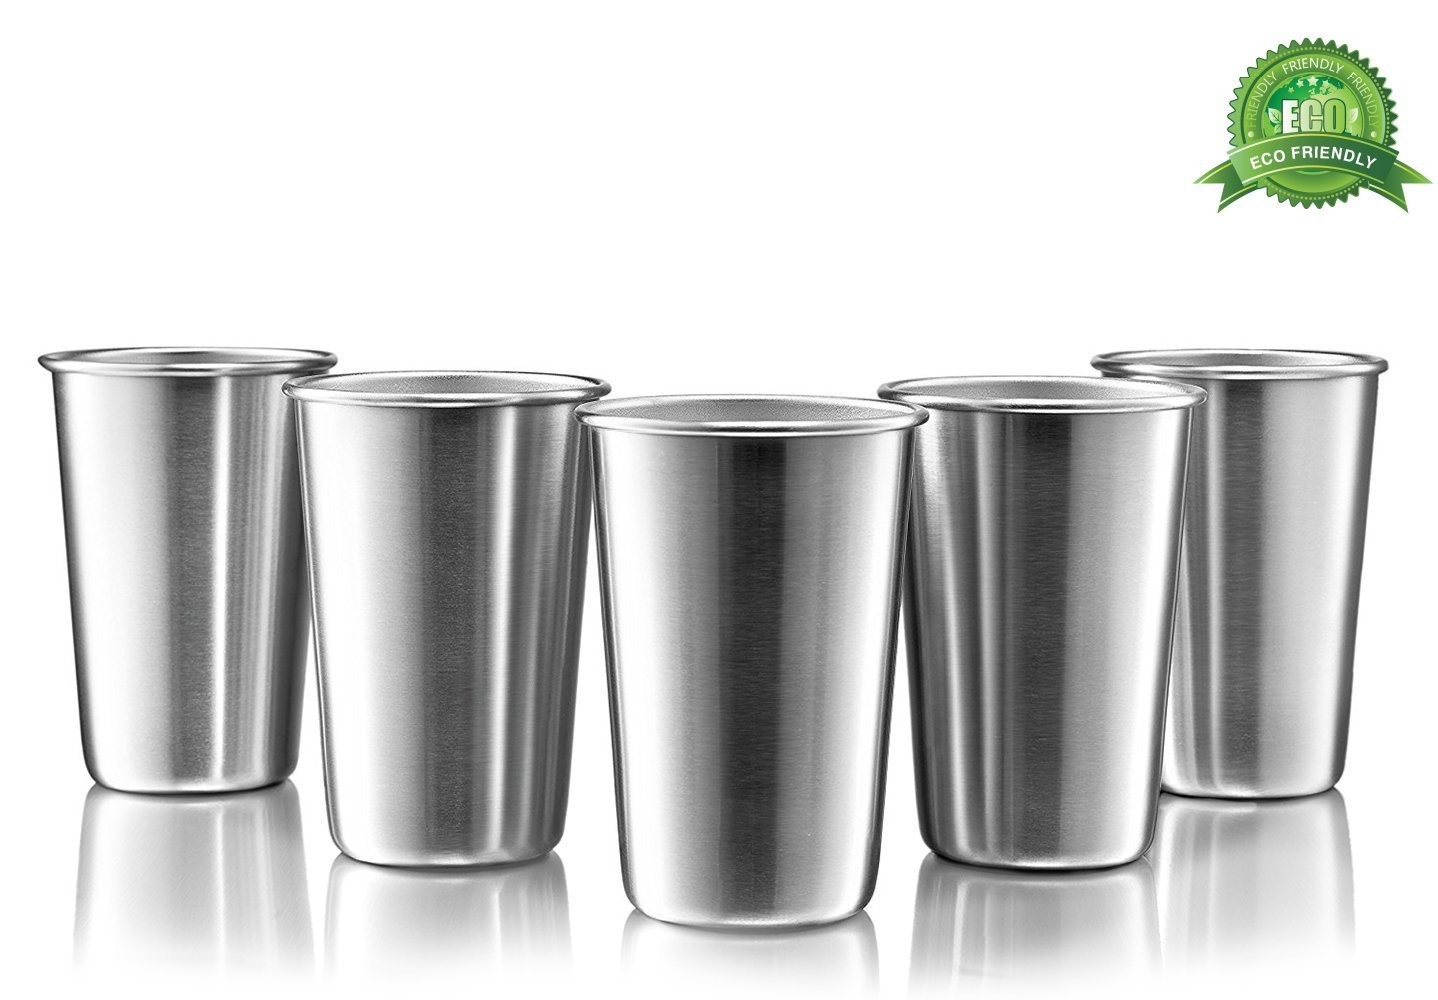 Premium Stainless Steel Cups - 16 Ounce Stainless Steel Pint Cup Tumblers - Eco-Friendly, BPA Free (5 Pack) by Modern Innovations